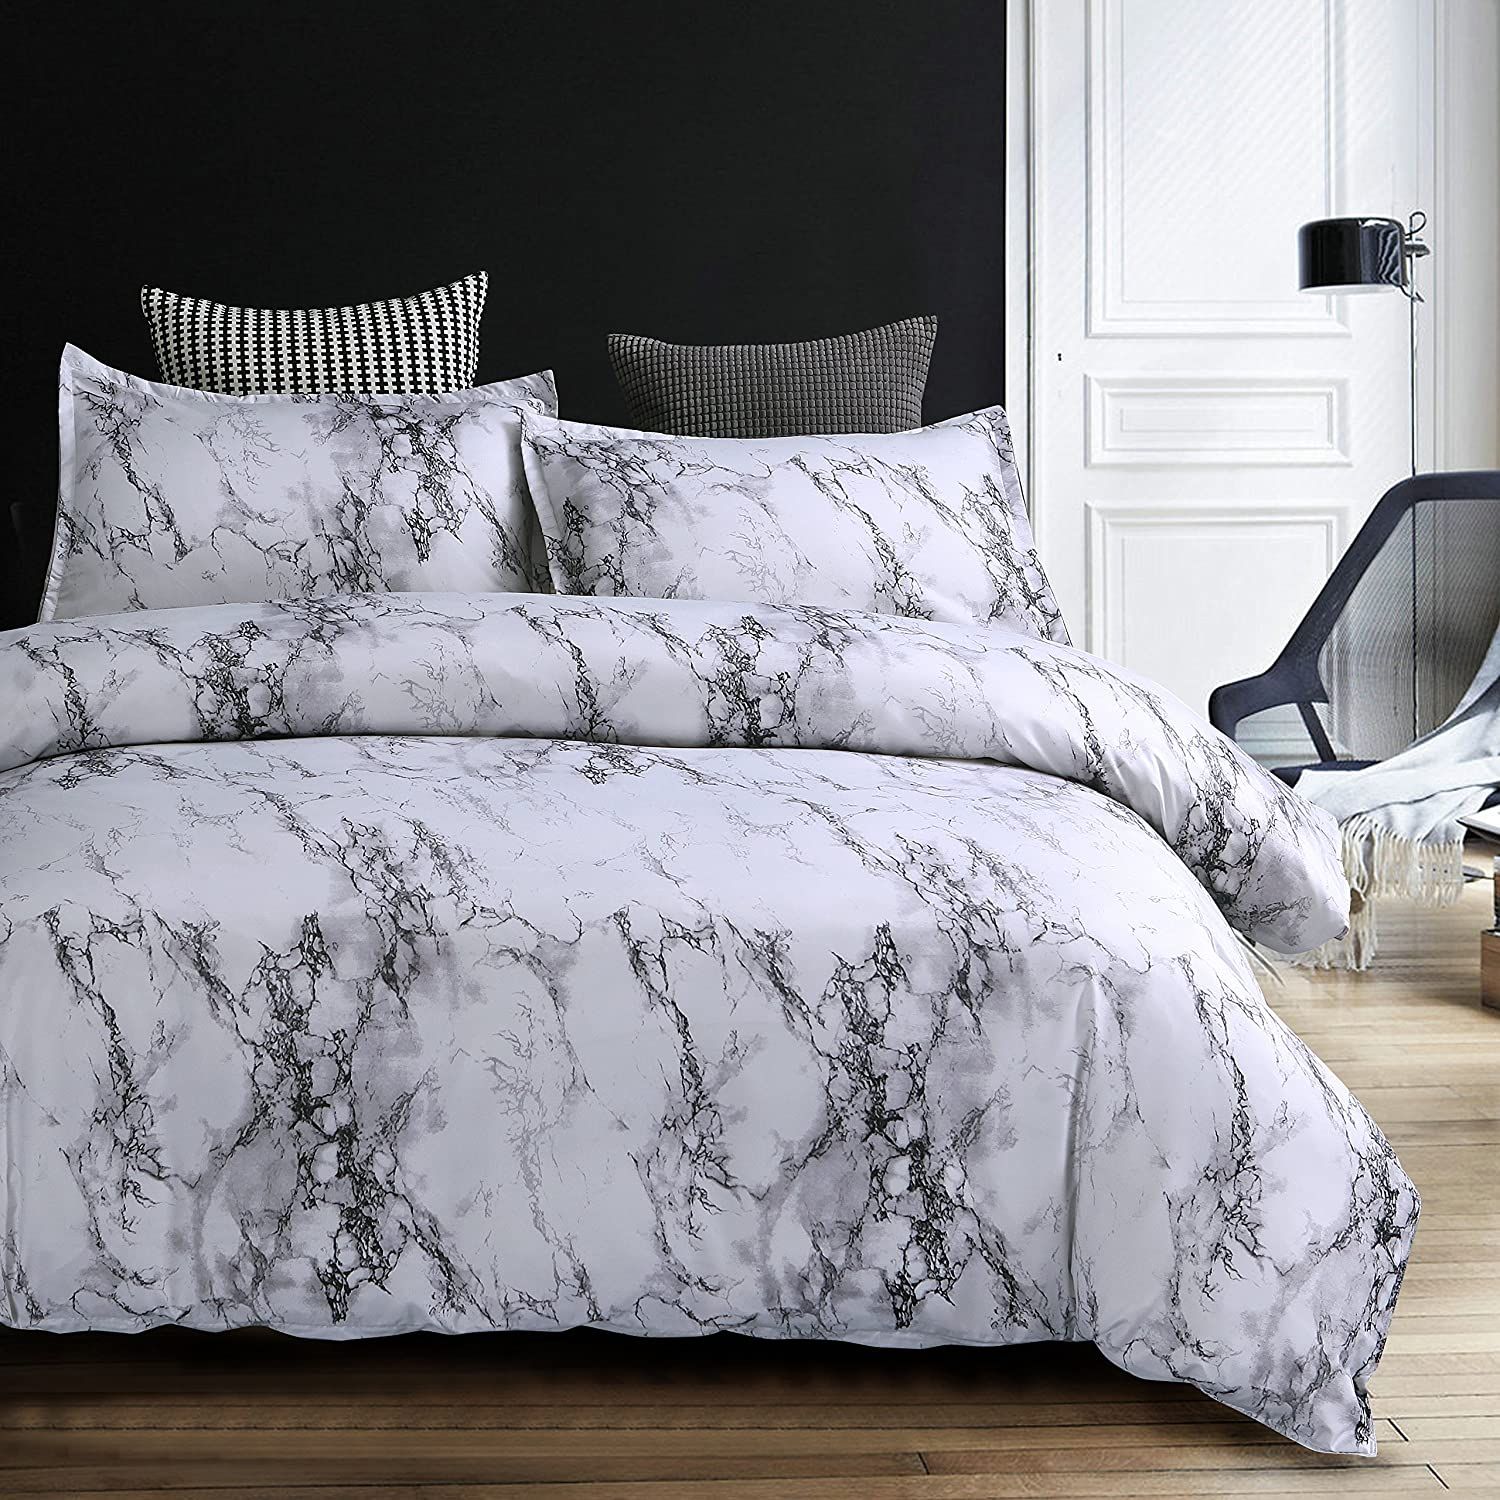 Nattey Duvet Cover Set White Marble Bedding Set With Zipper (Twin, White Marble)